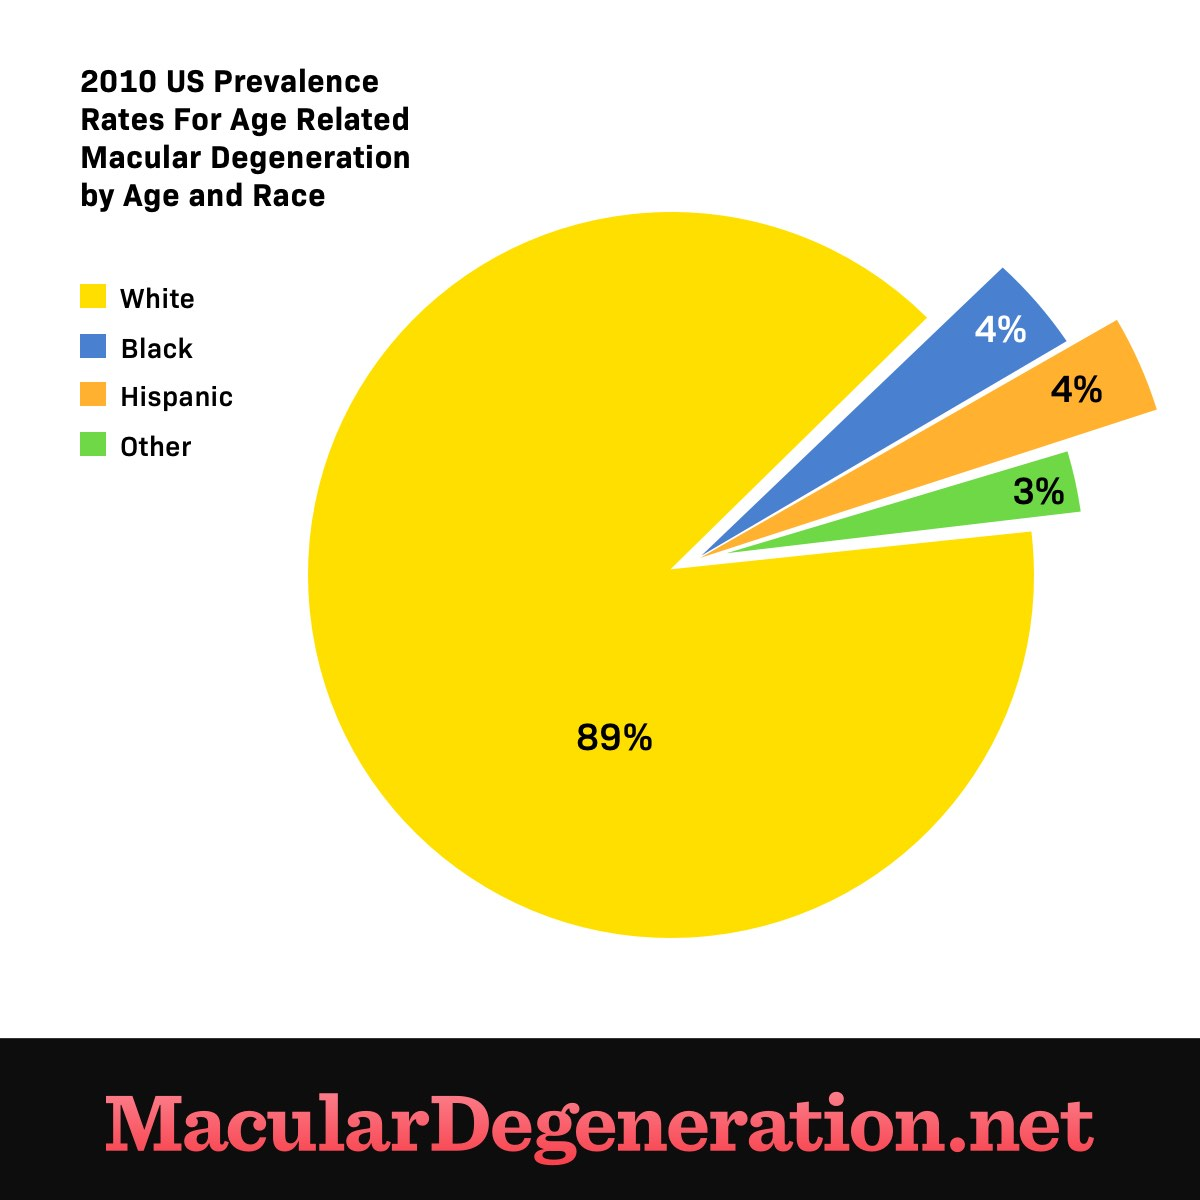 89 percent of those diagnosed with age related macular degeneration are white